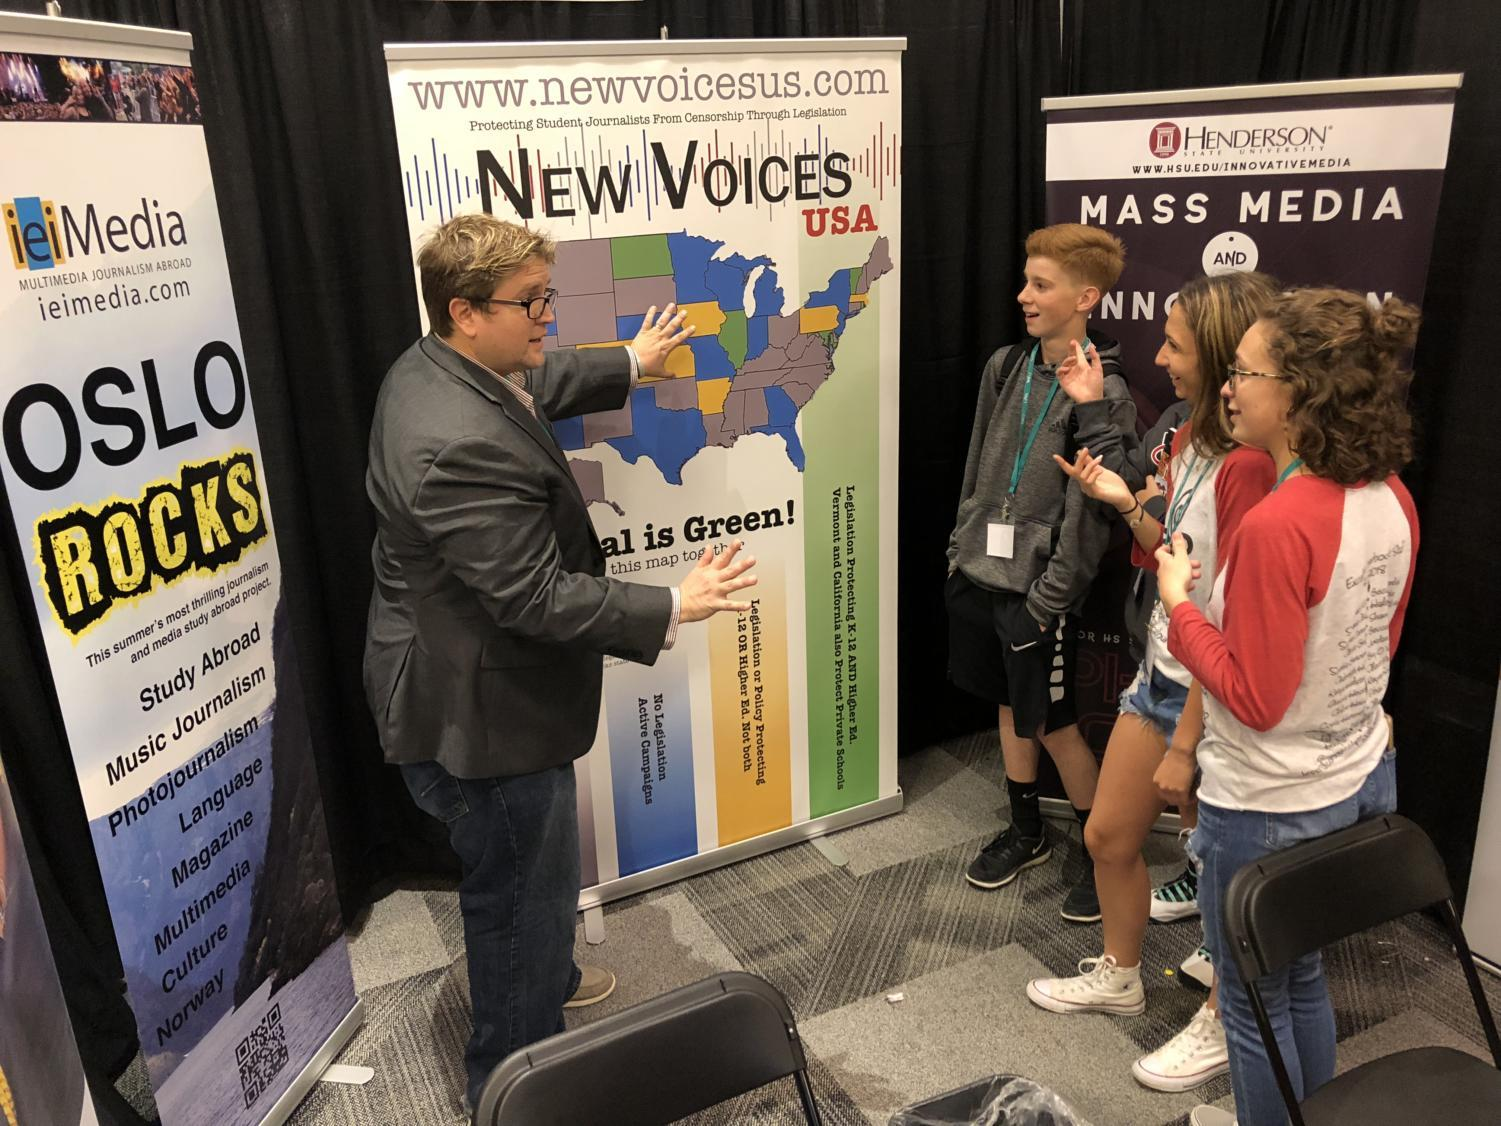 Professor Steven Listopad of Henderson University talks to a group of students at the Dallas convention about the New Voices campaign that was started by his students at the University of Jamestown North in North Dakota.